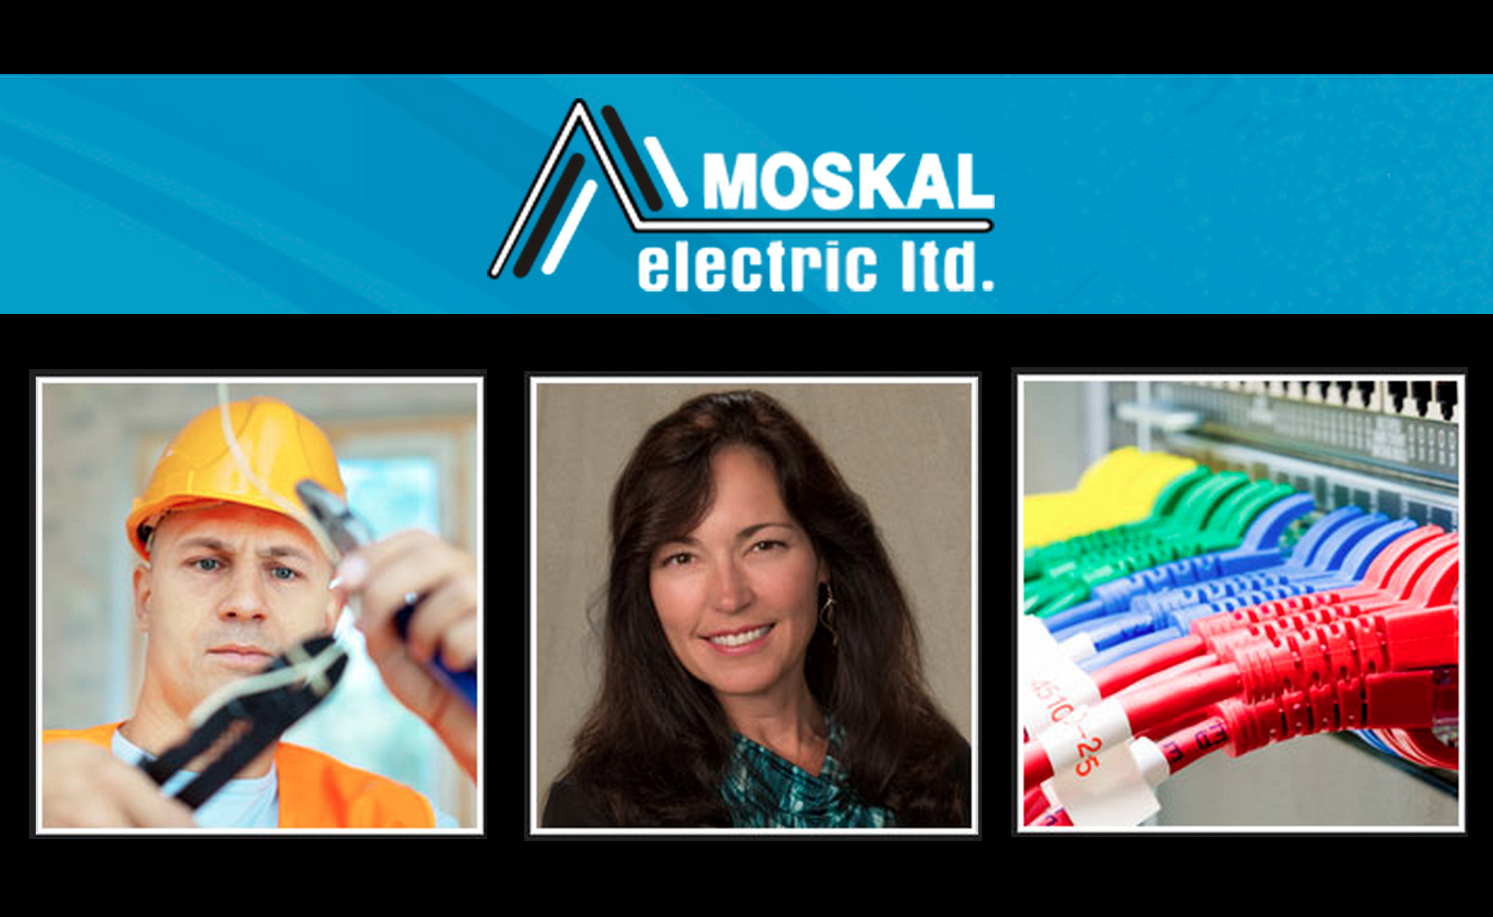 Moskal Electric